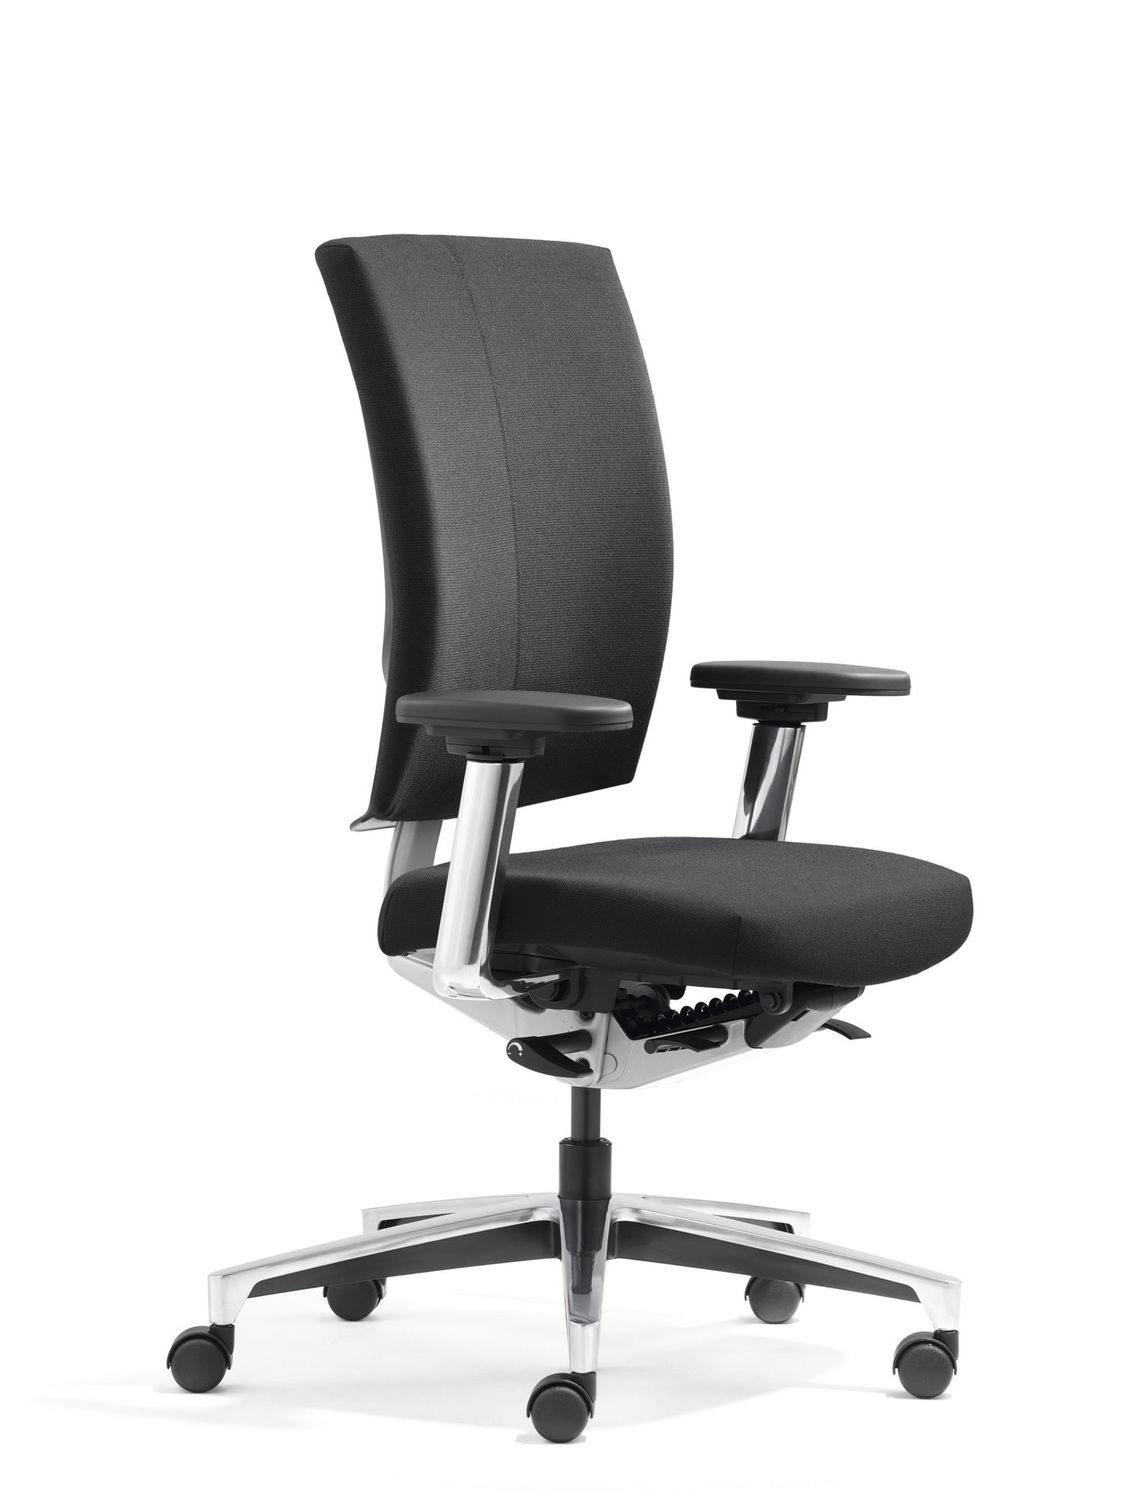 xl desk chair cover rentals bronx ny contemporary office on casters with armrests star base cato plus xs